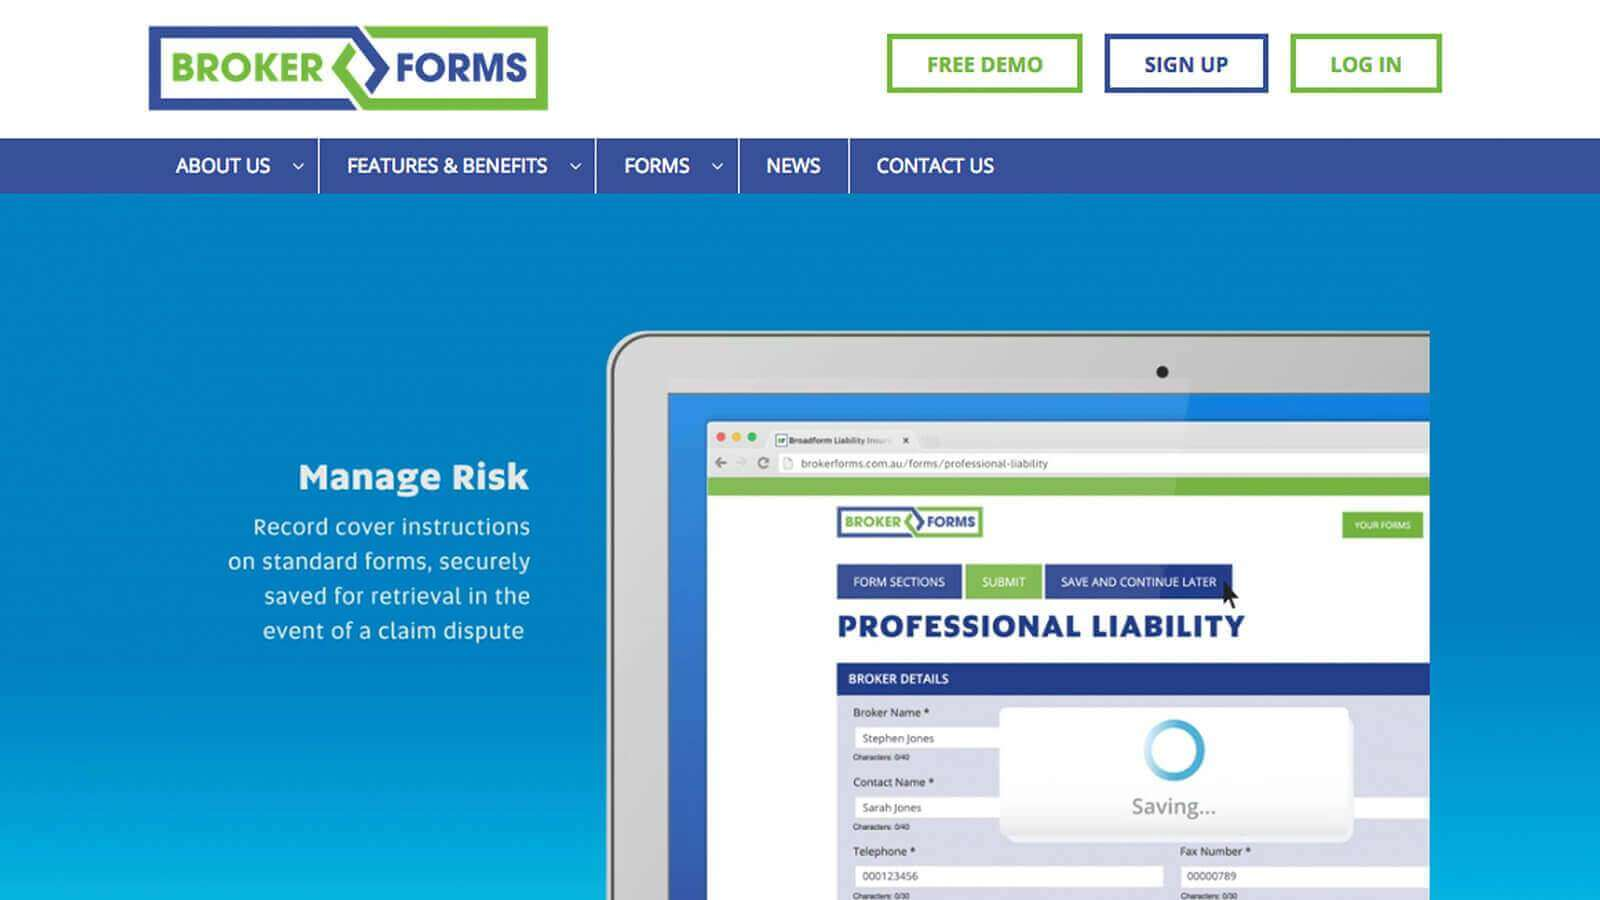 Broker Forms Website Development